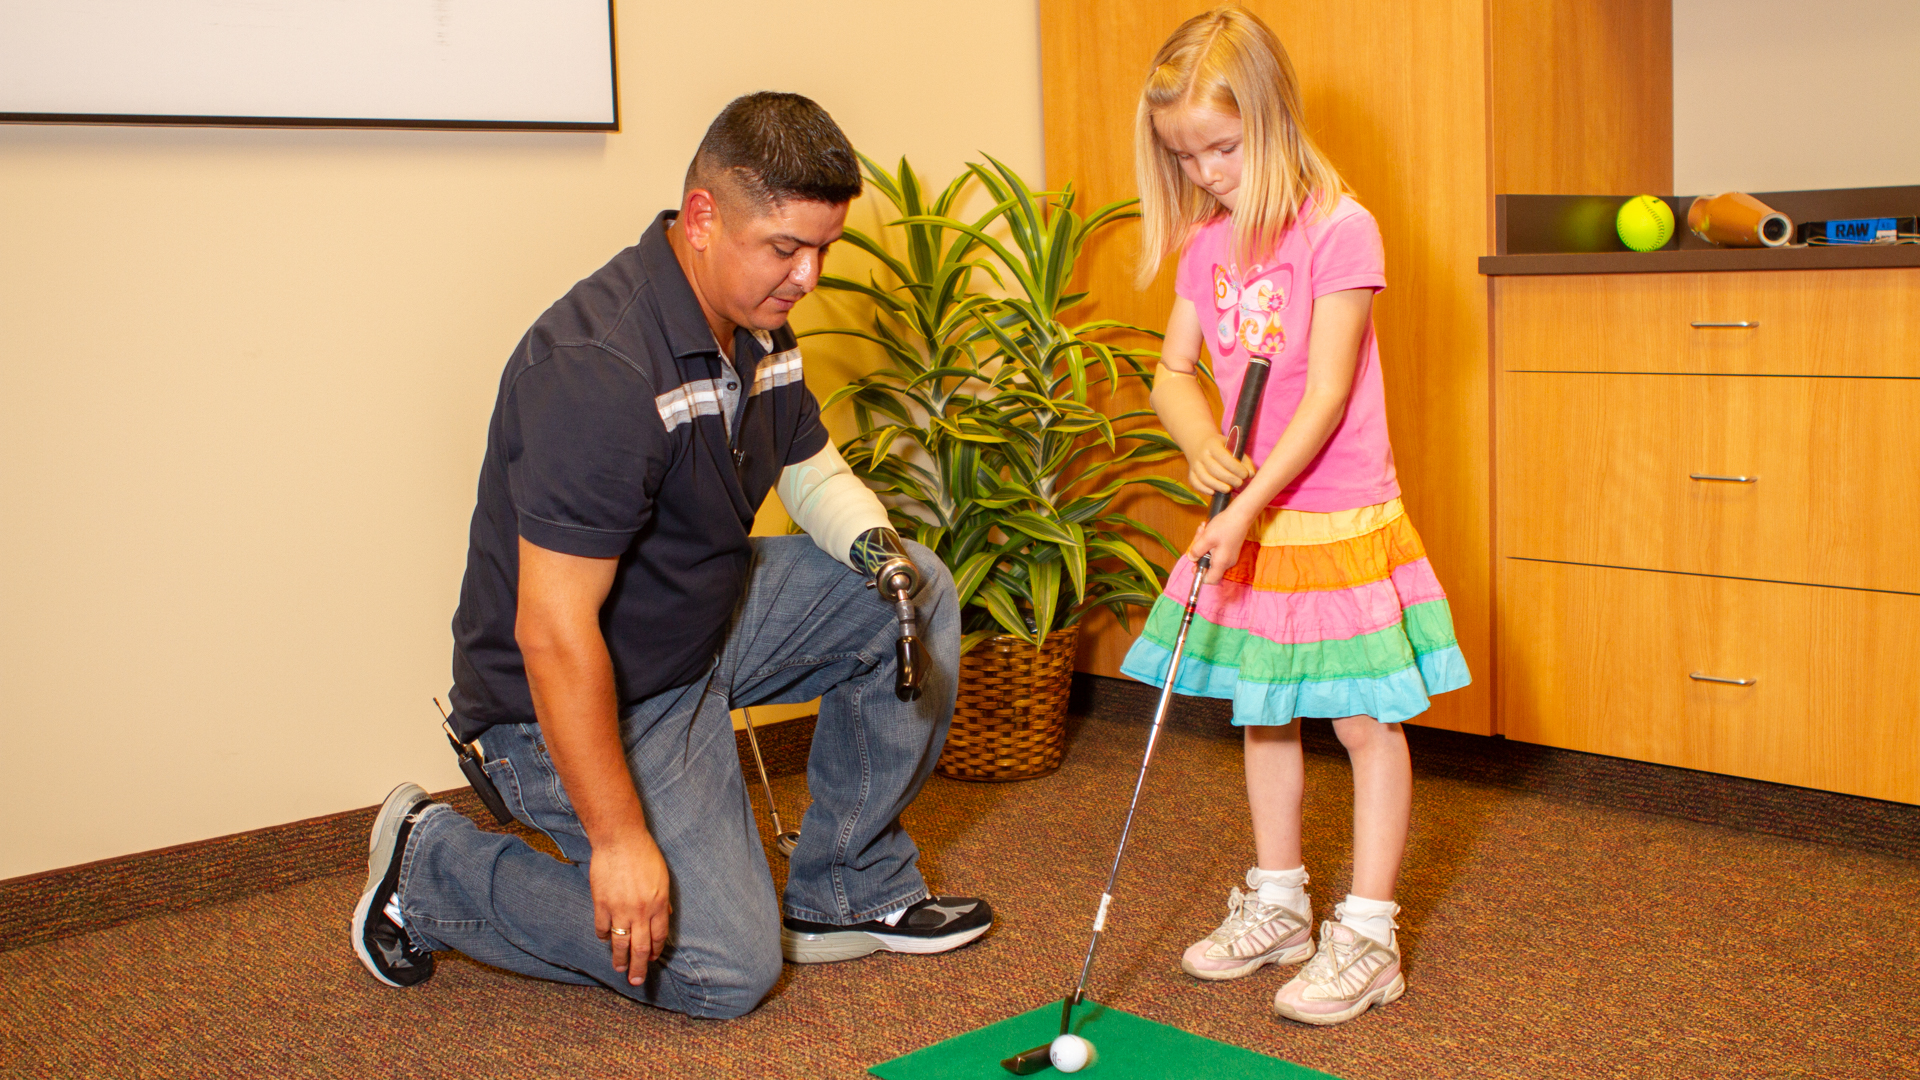 While in town on an event, Ramon Padilla works with pediatric patient Amber Peterson at her golf game.